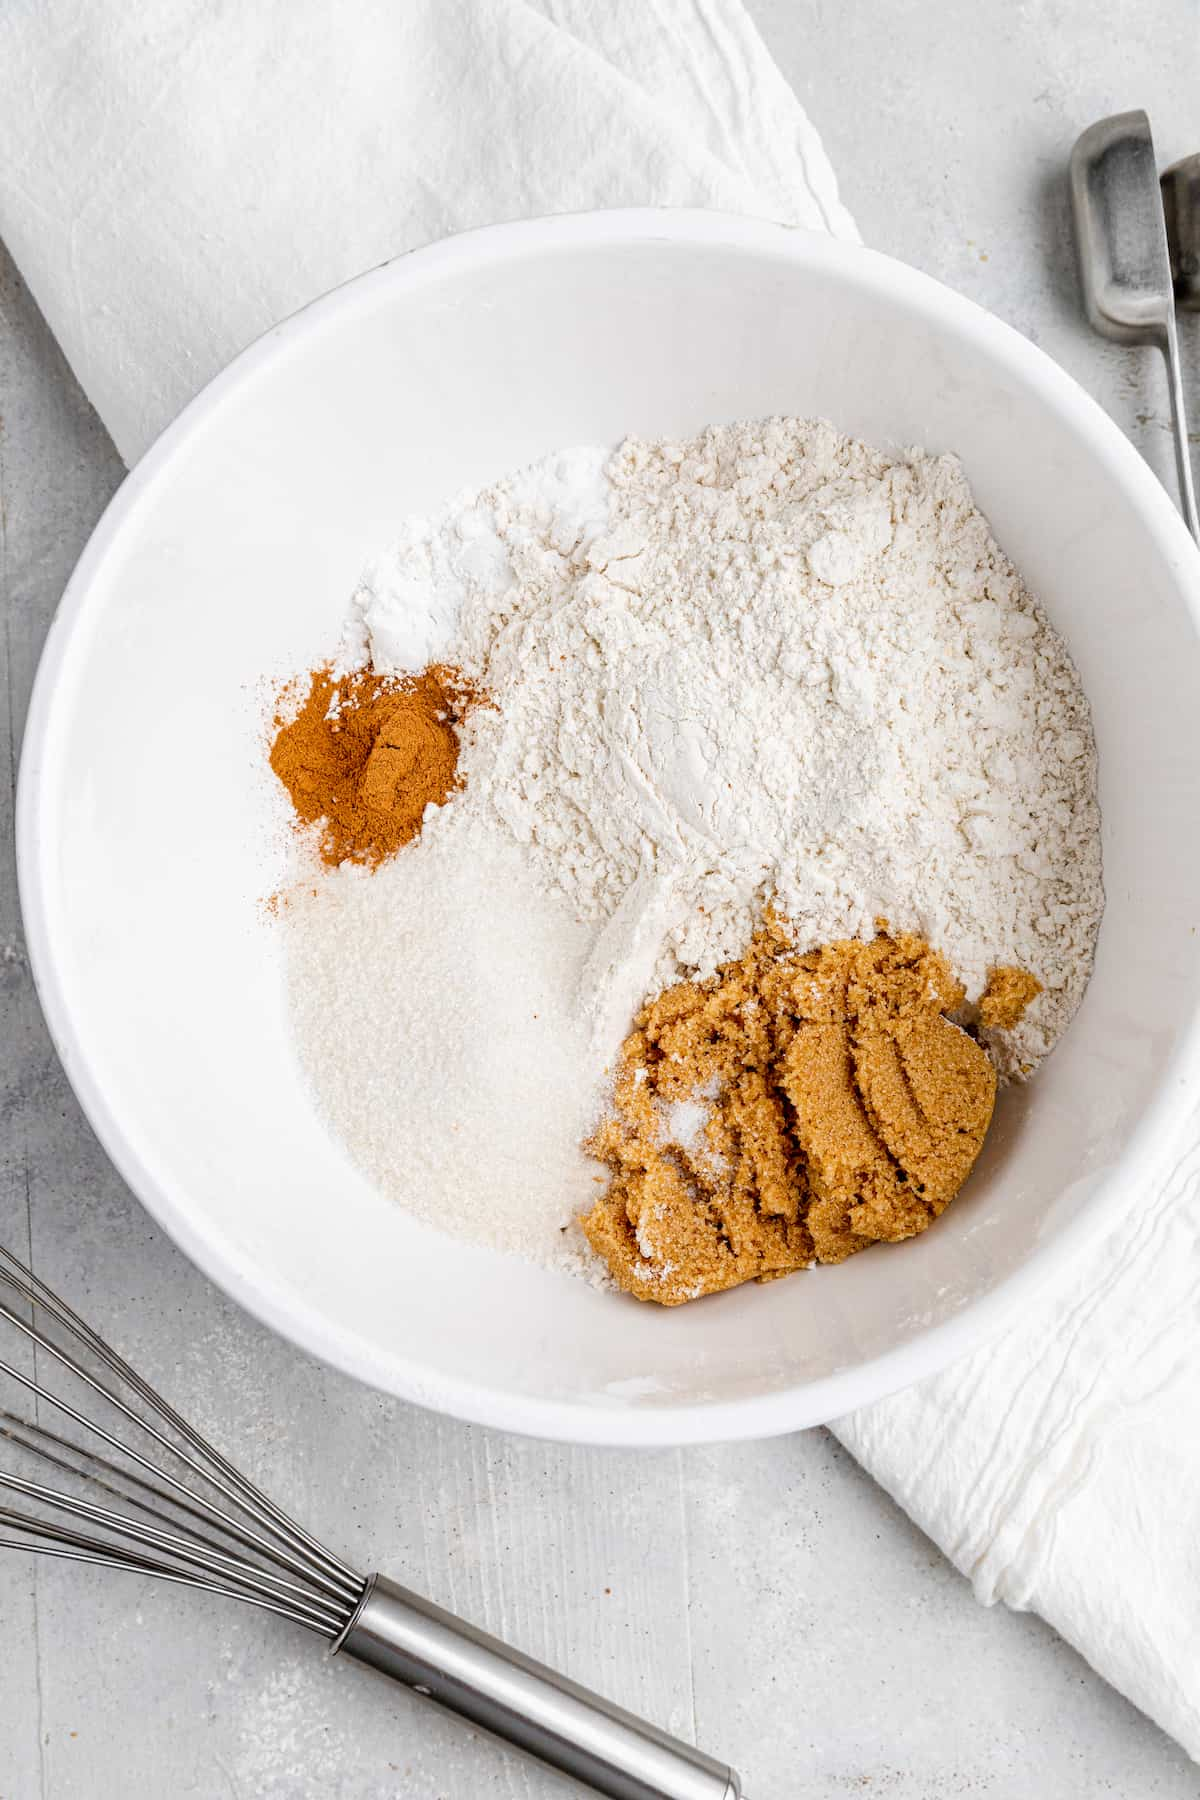 dry ingredients flour, cinnamon, baking powder and salt in a white mixing bowl